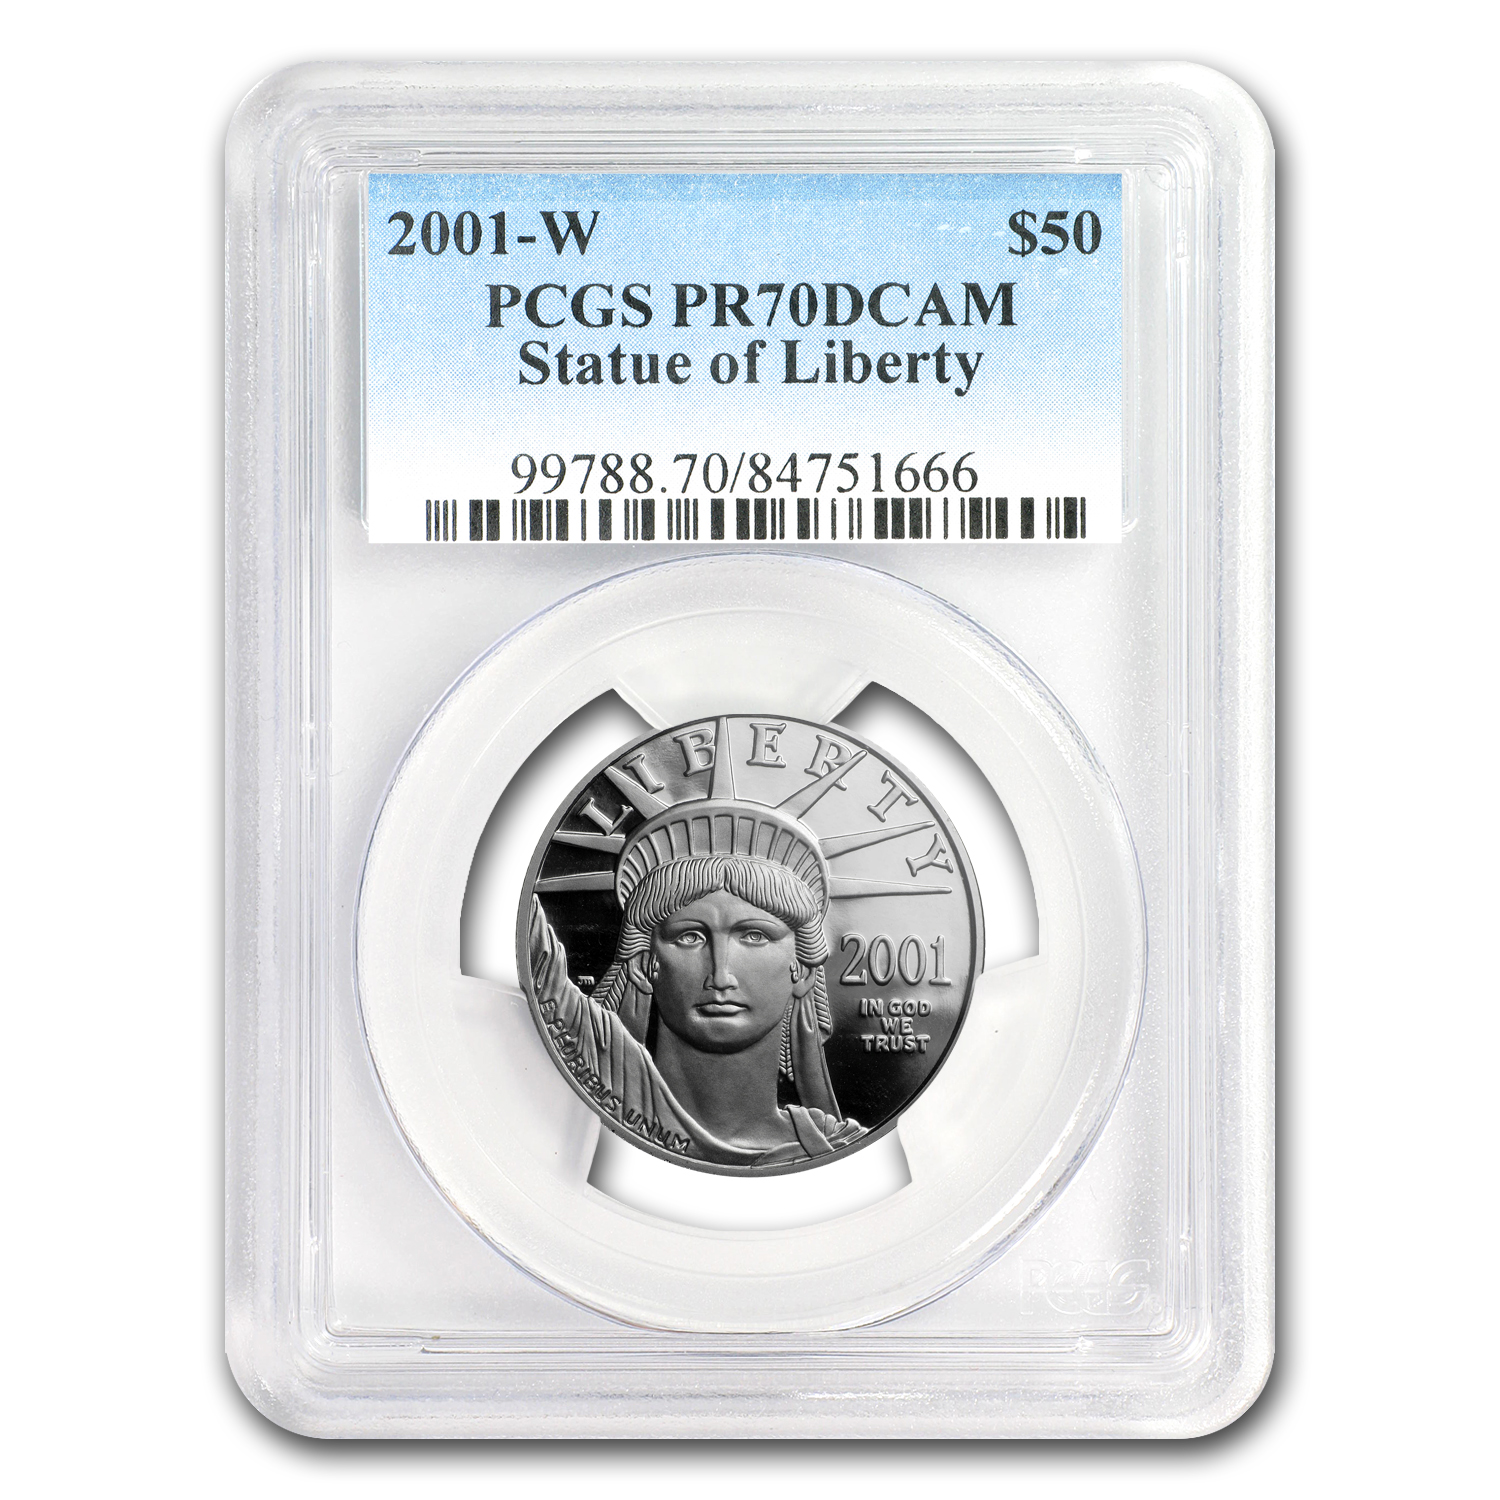 2001-W 1/2 oz Proof Platinum American Eagle PR-70 PCGS